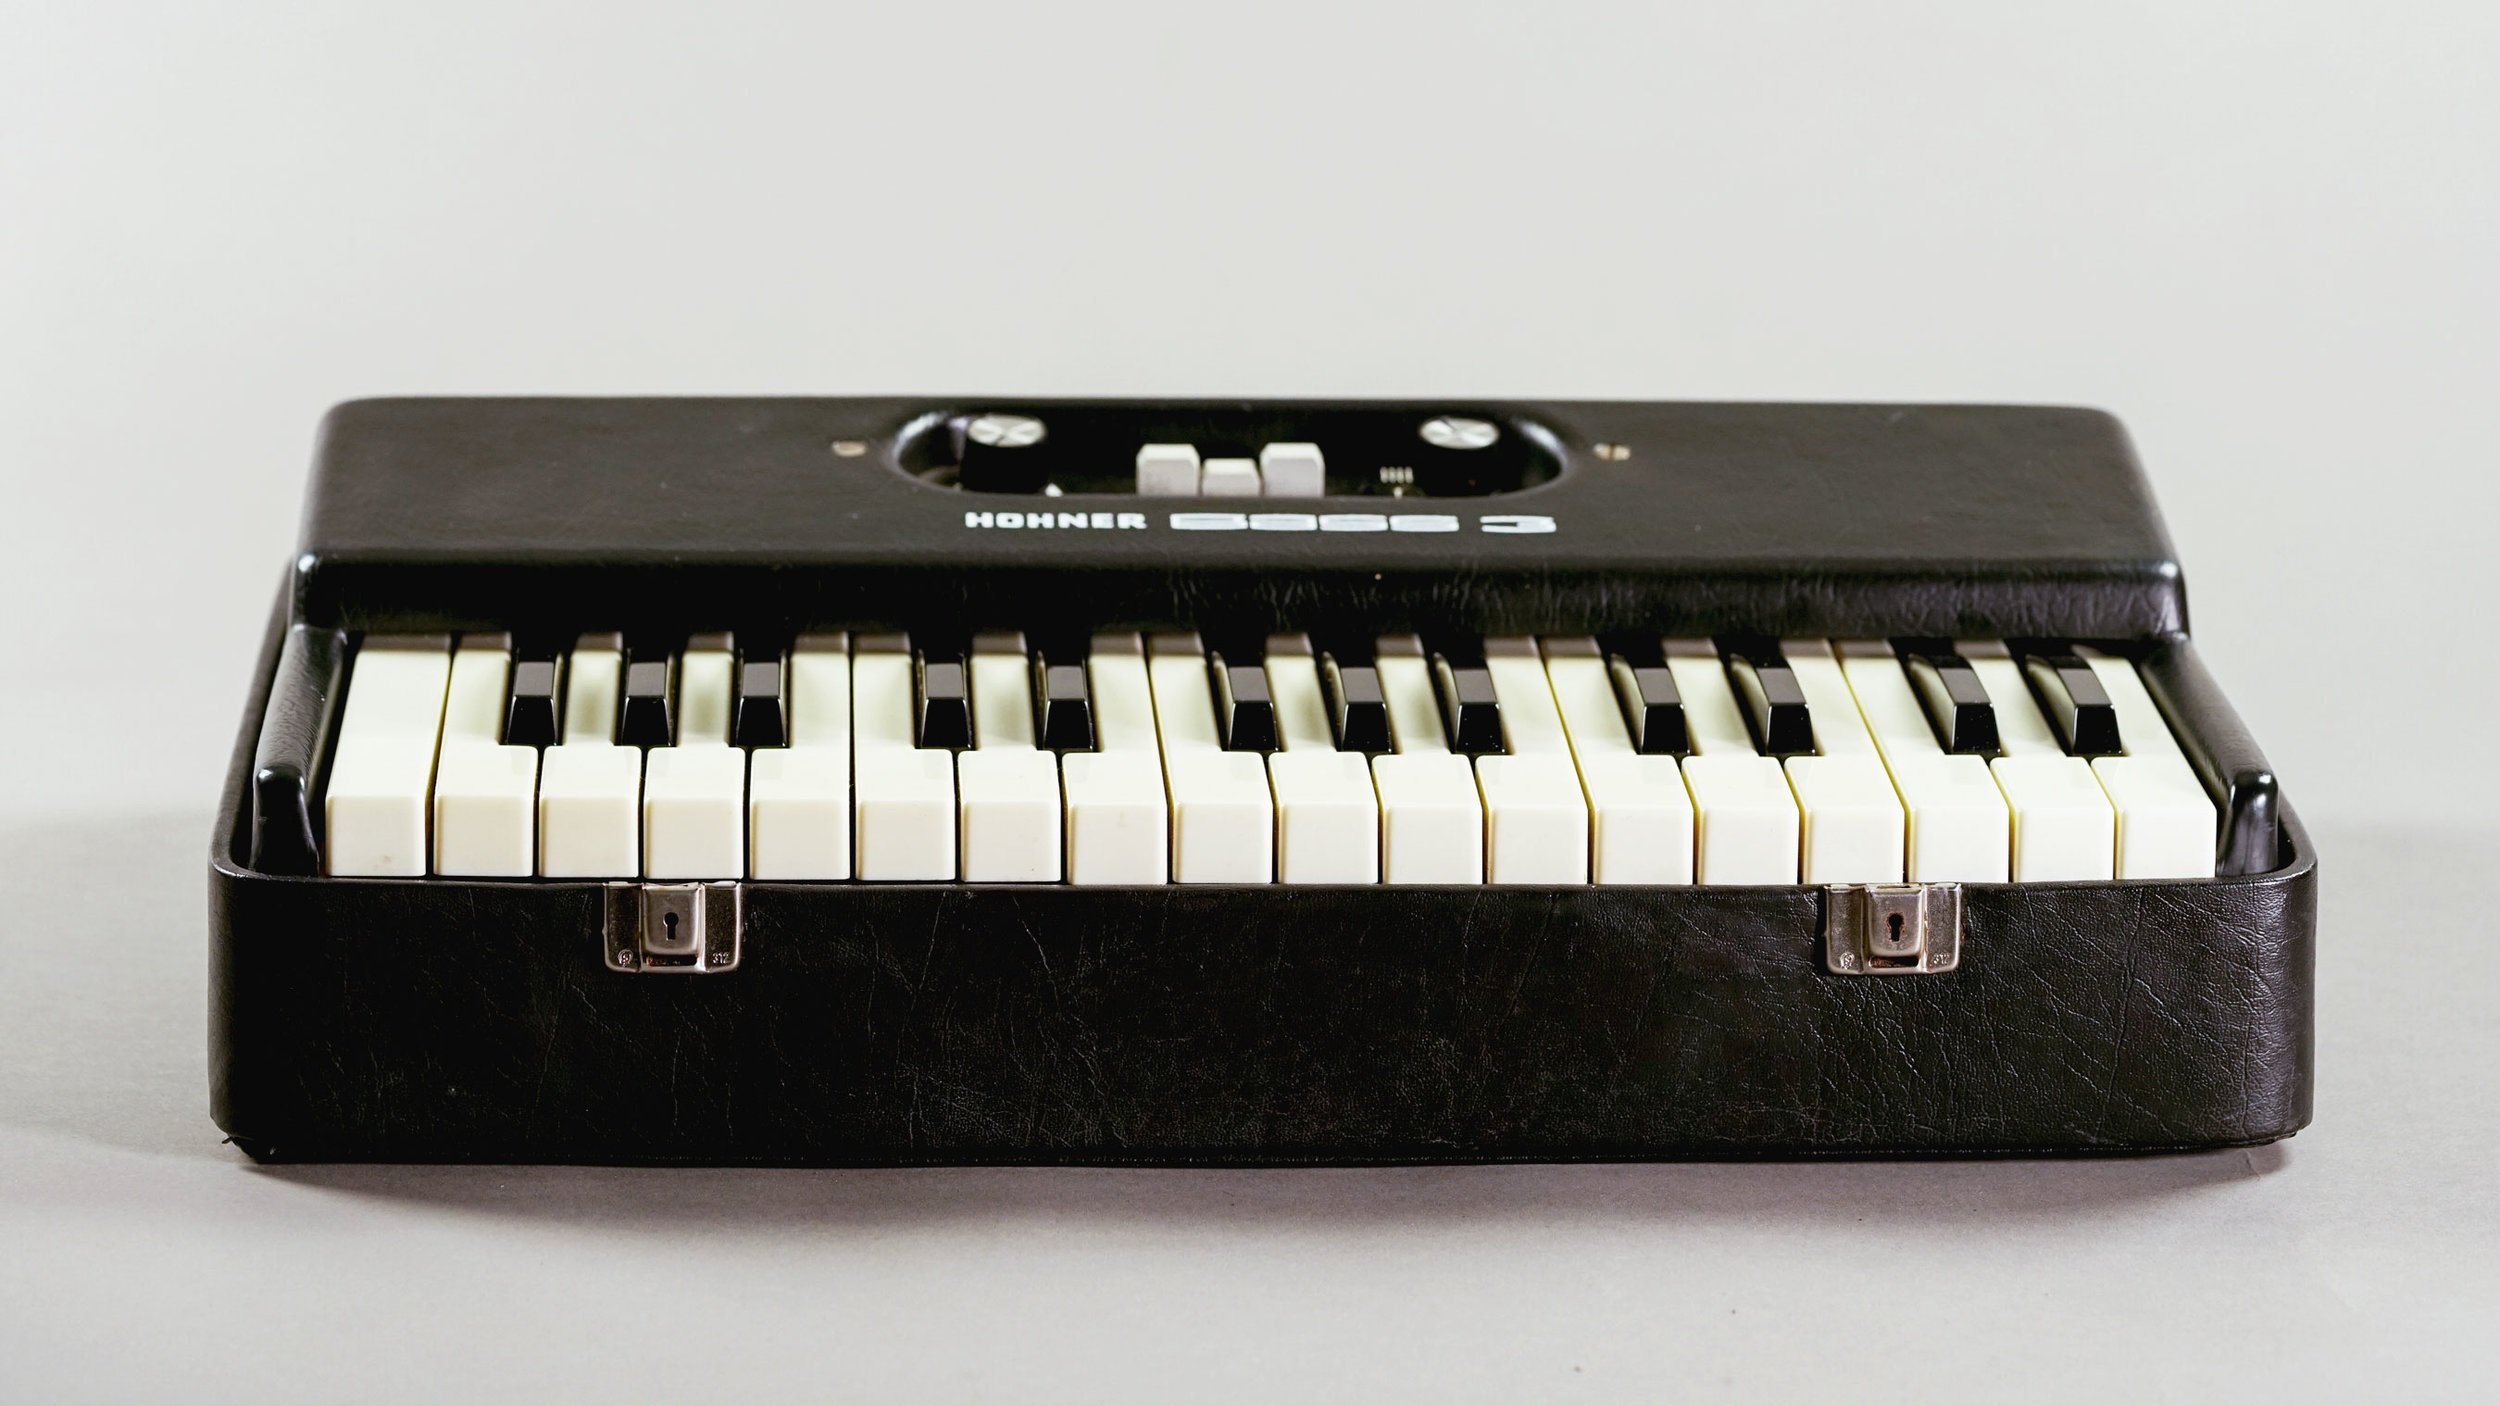 This Hohner Bass 3 is a vintage monophonic synth. it sounds great through a preamp.